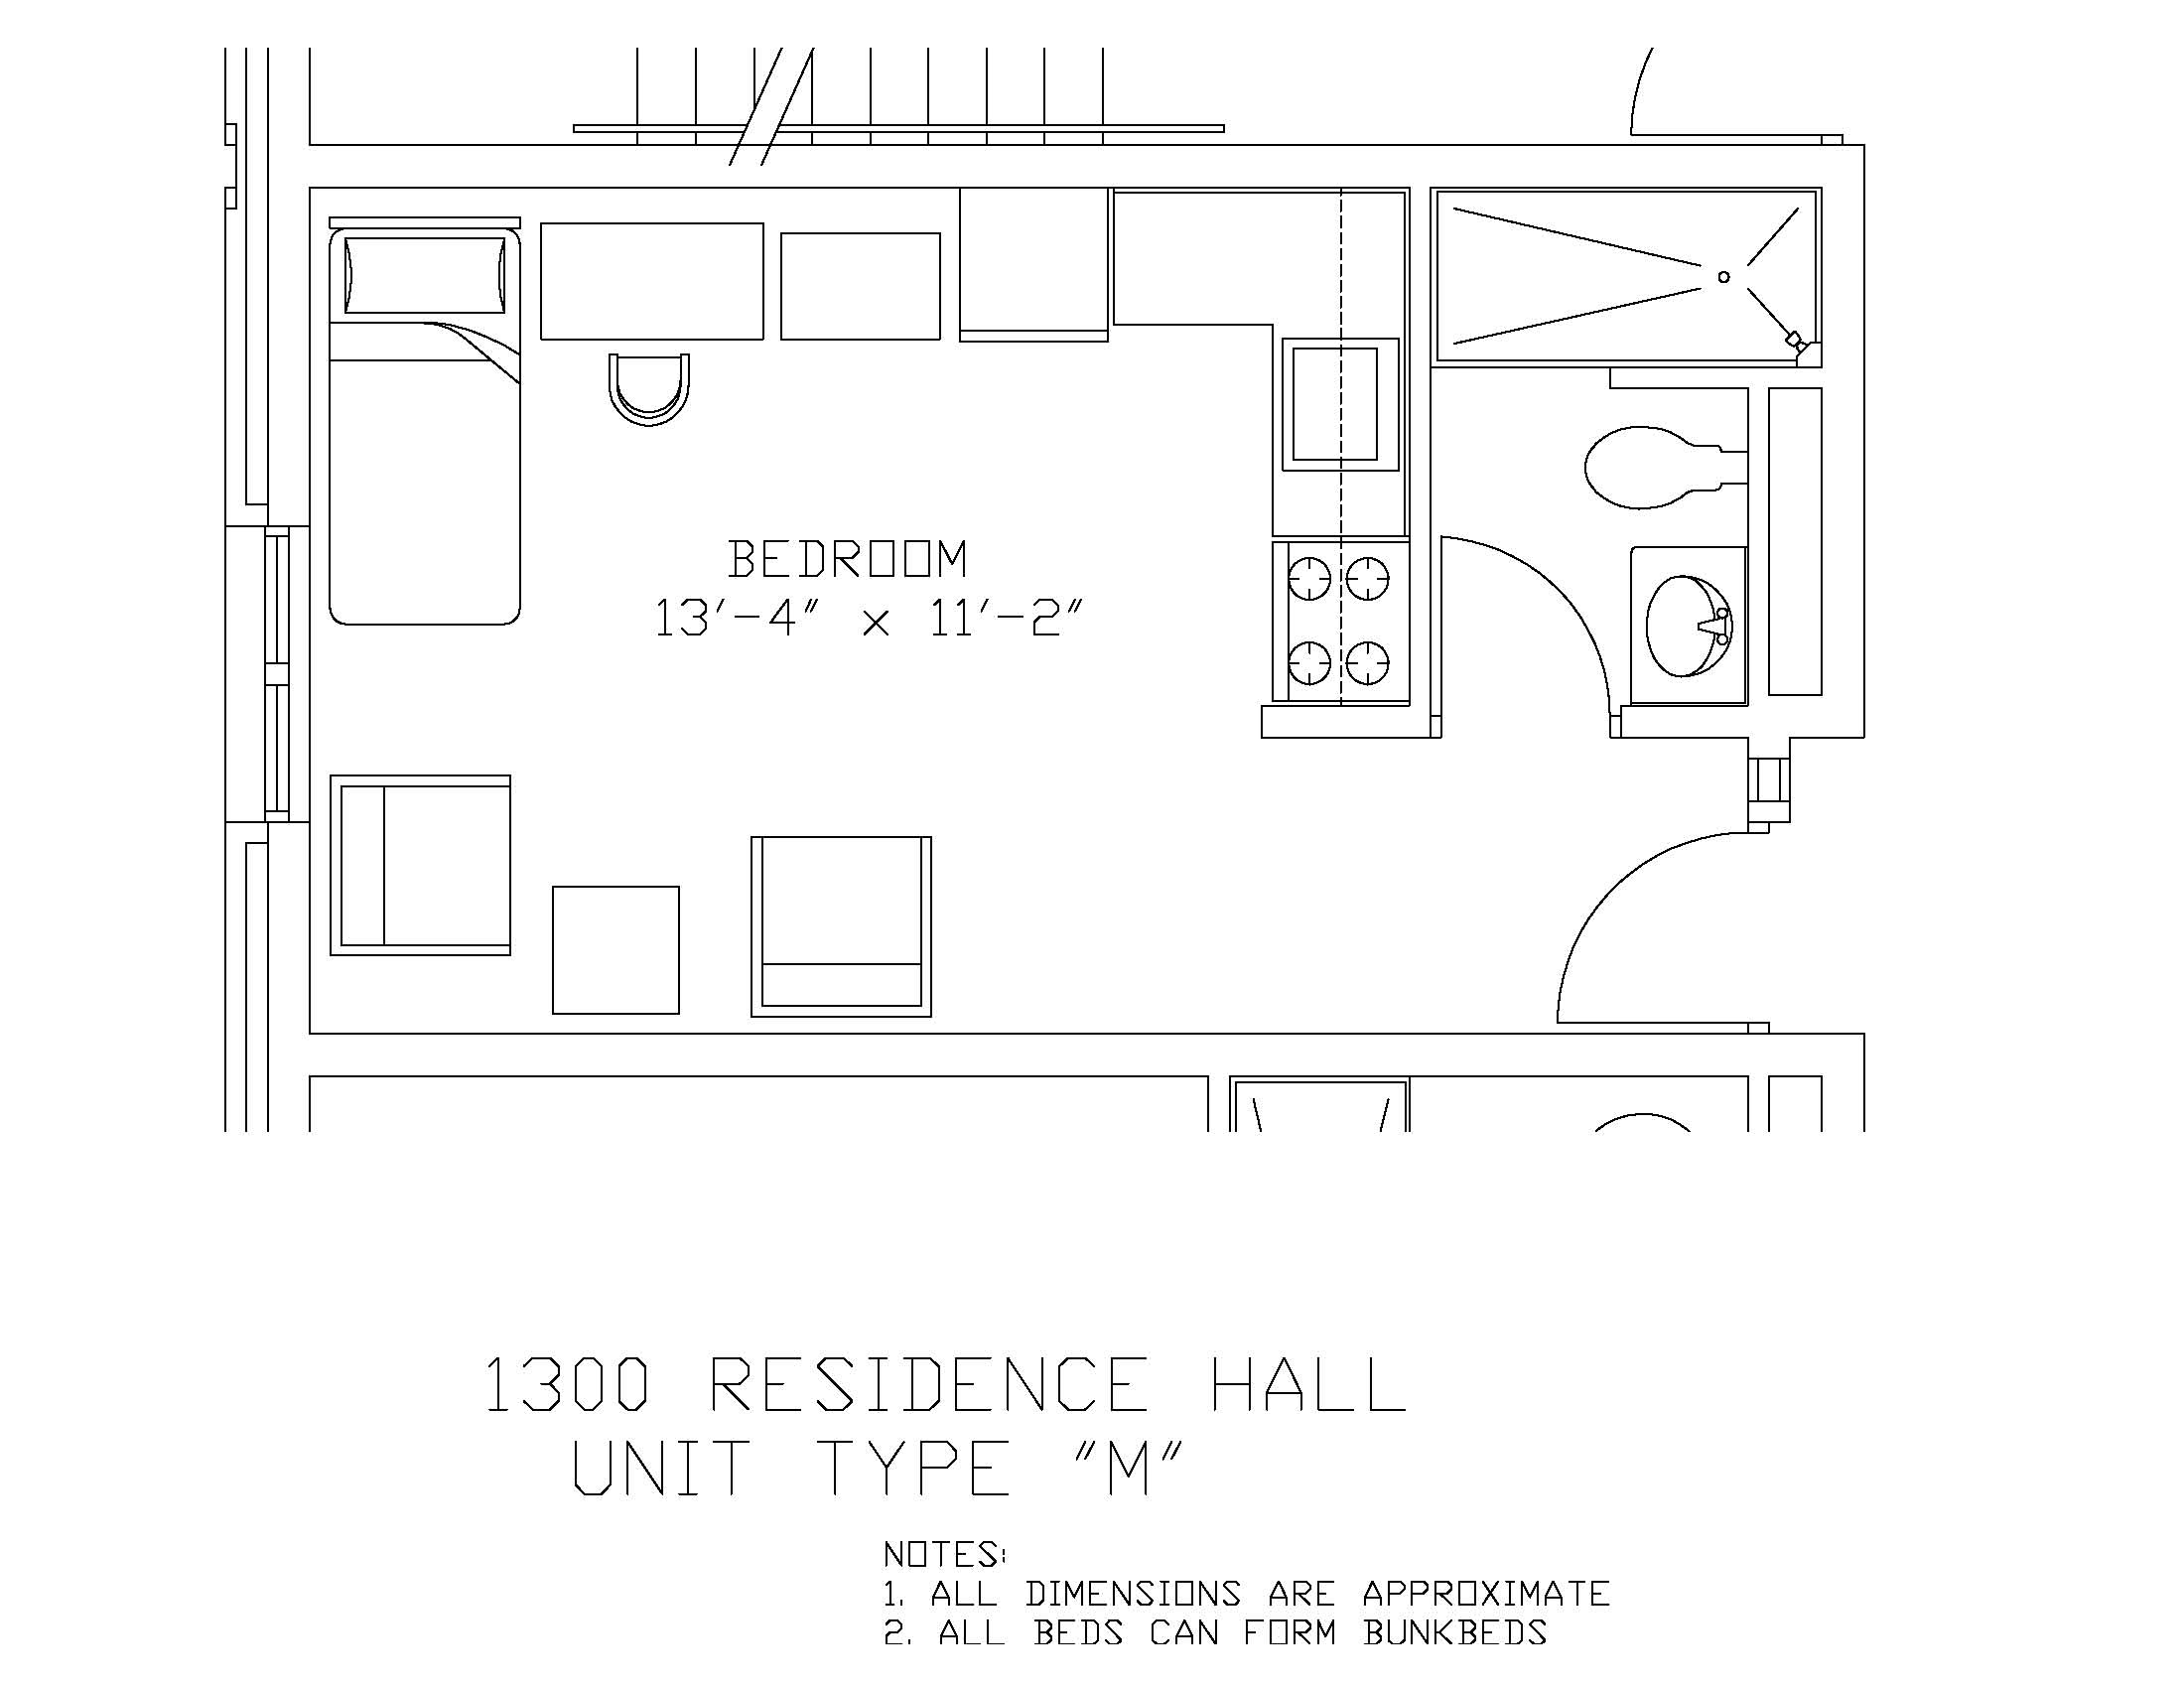 1300 Residence Hall: Type M